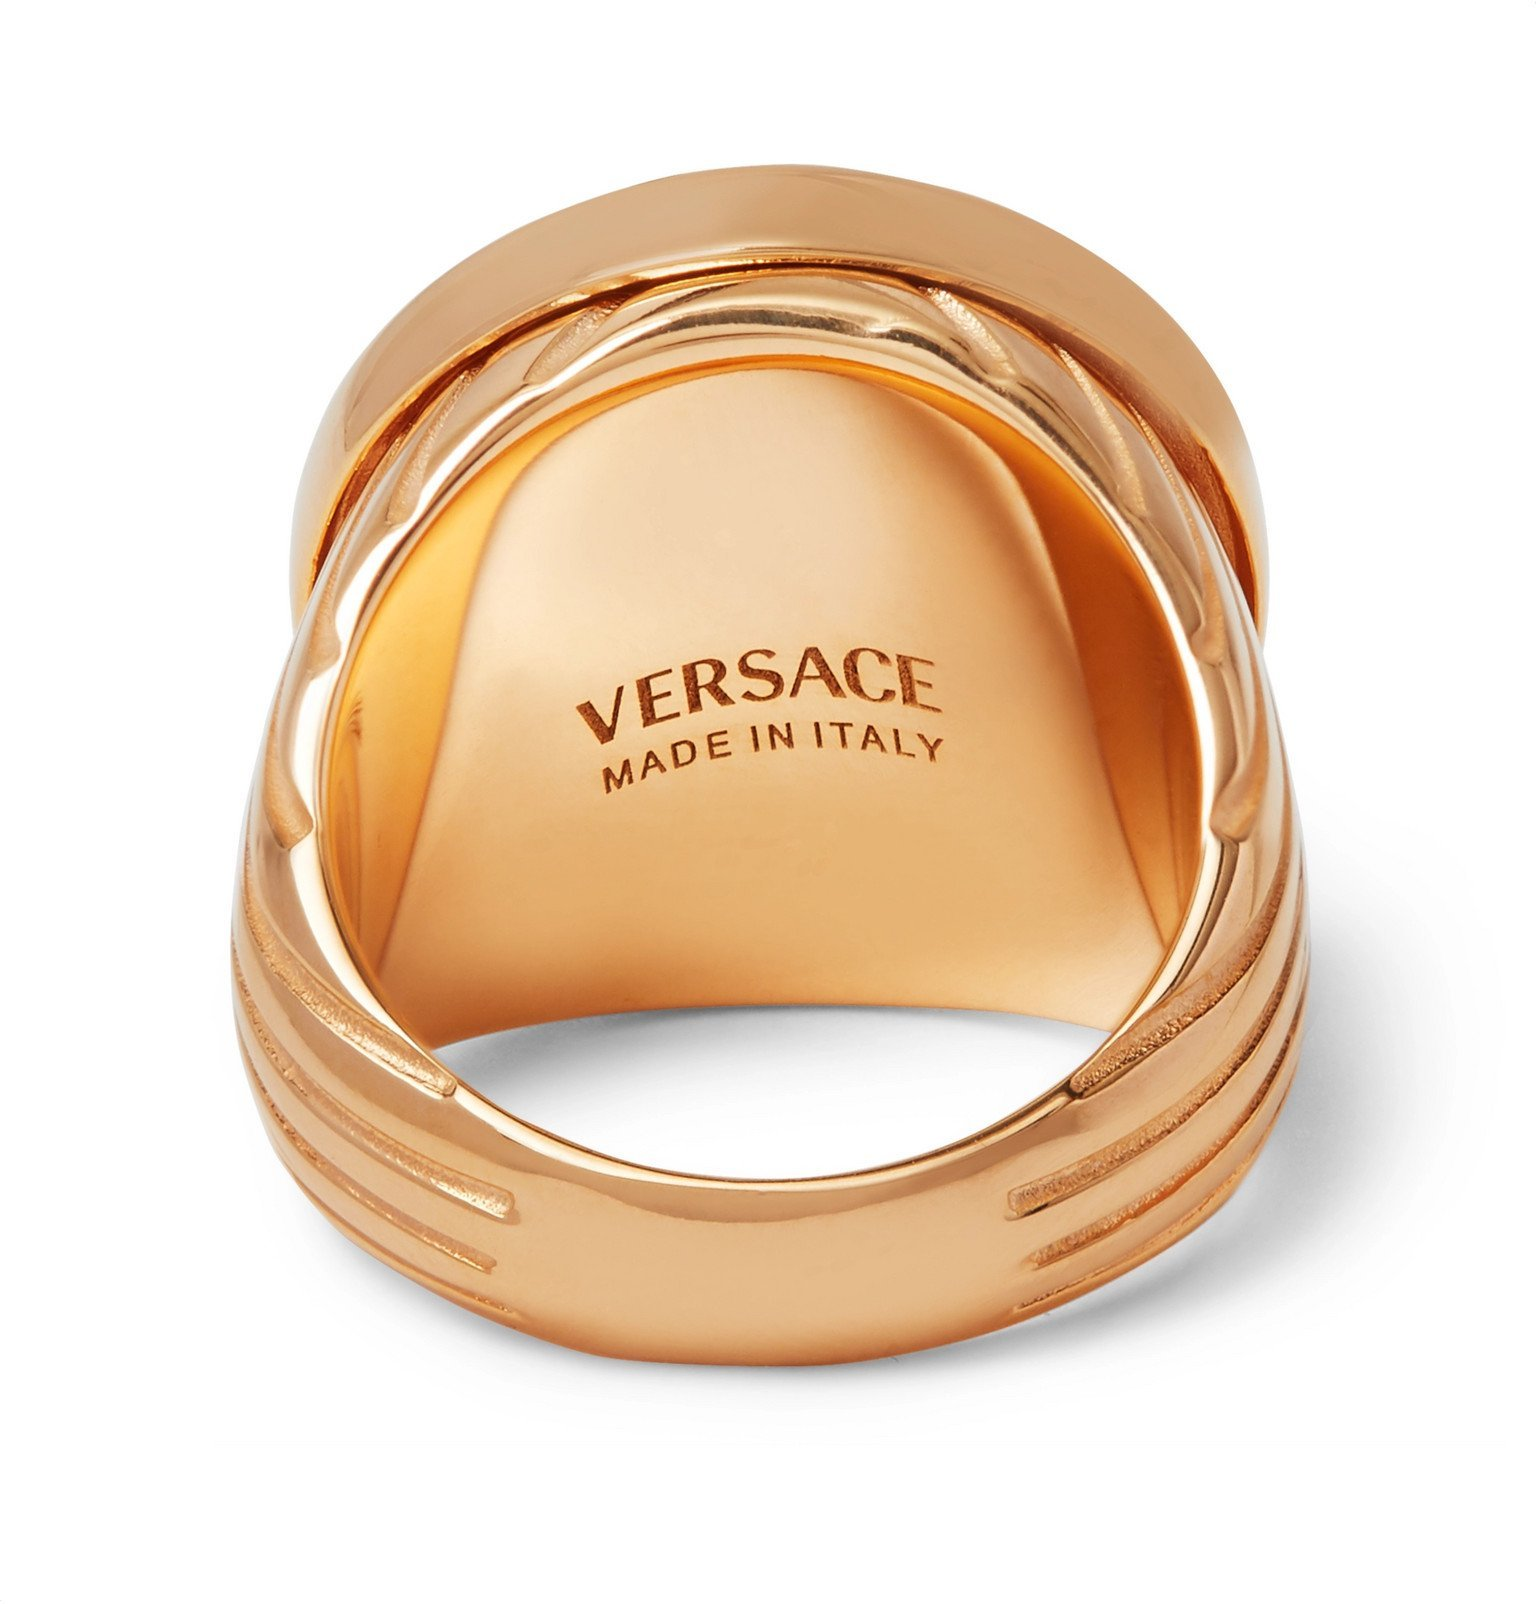 Versace - Gold-Tone Signet Ring - Gold